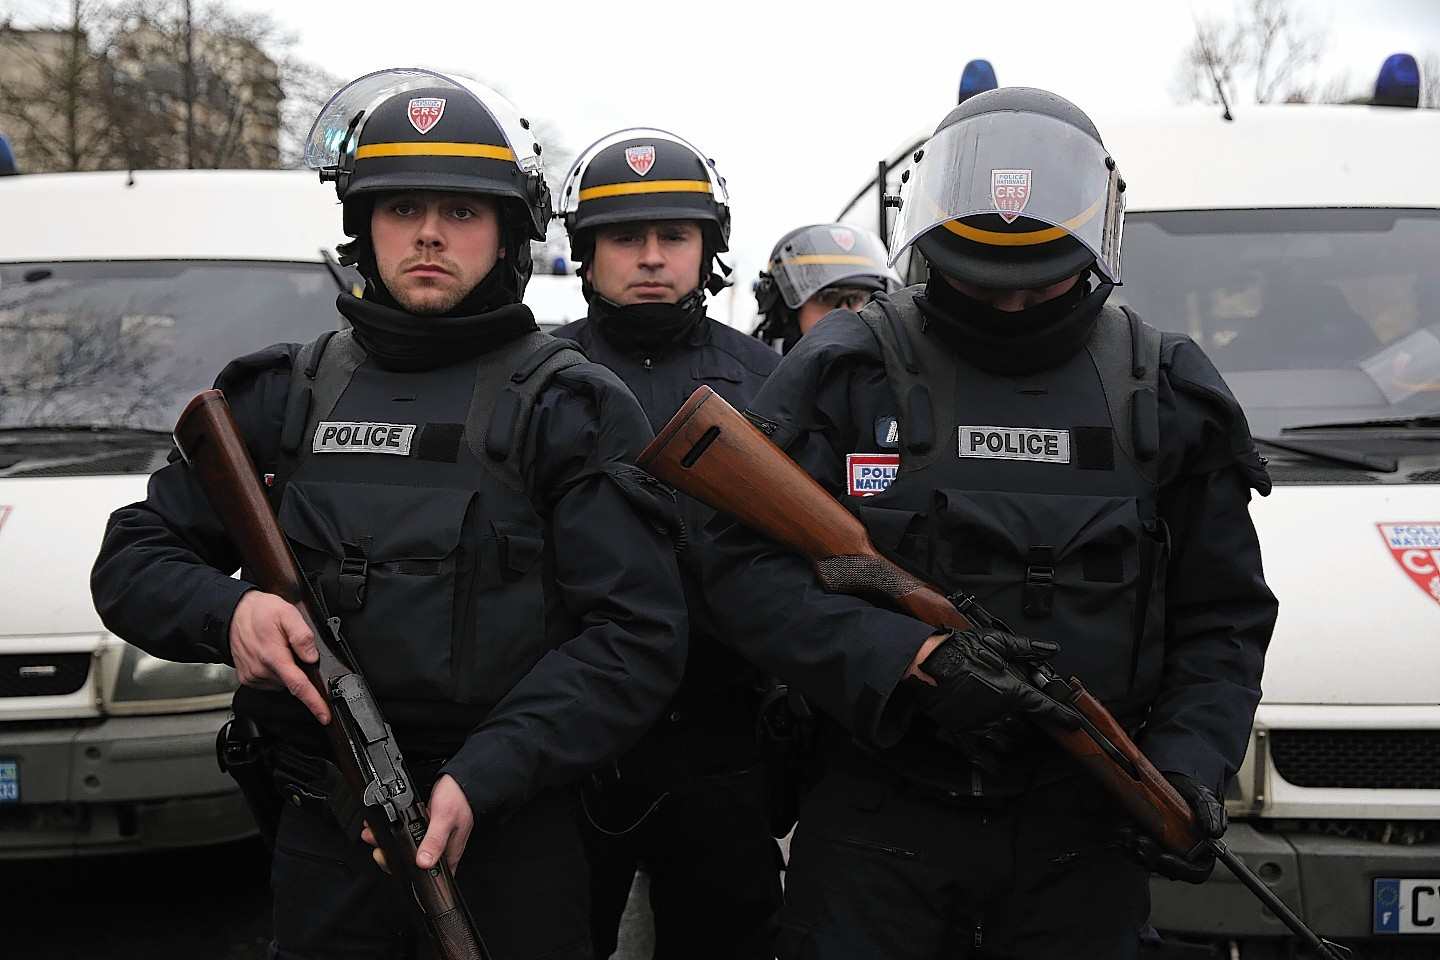 Armed police officers in Paris this afternoon